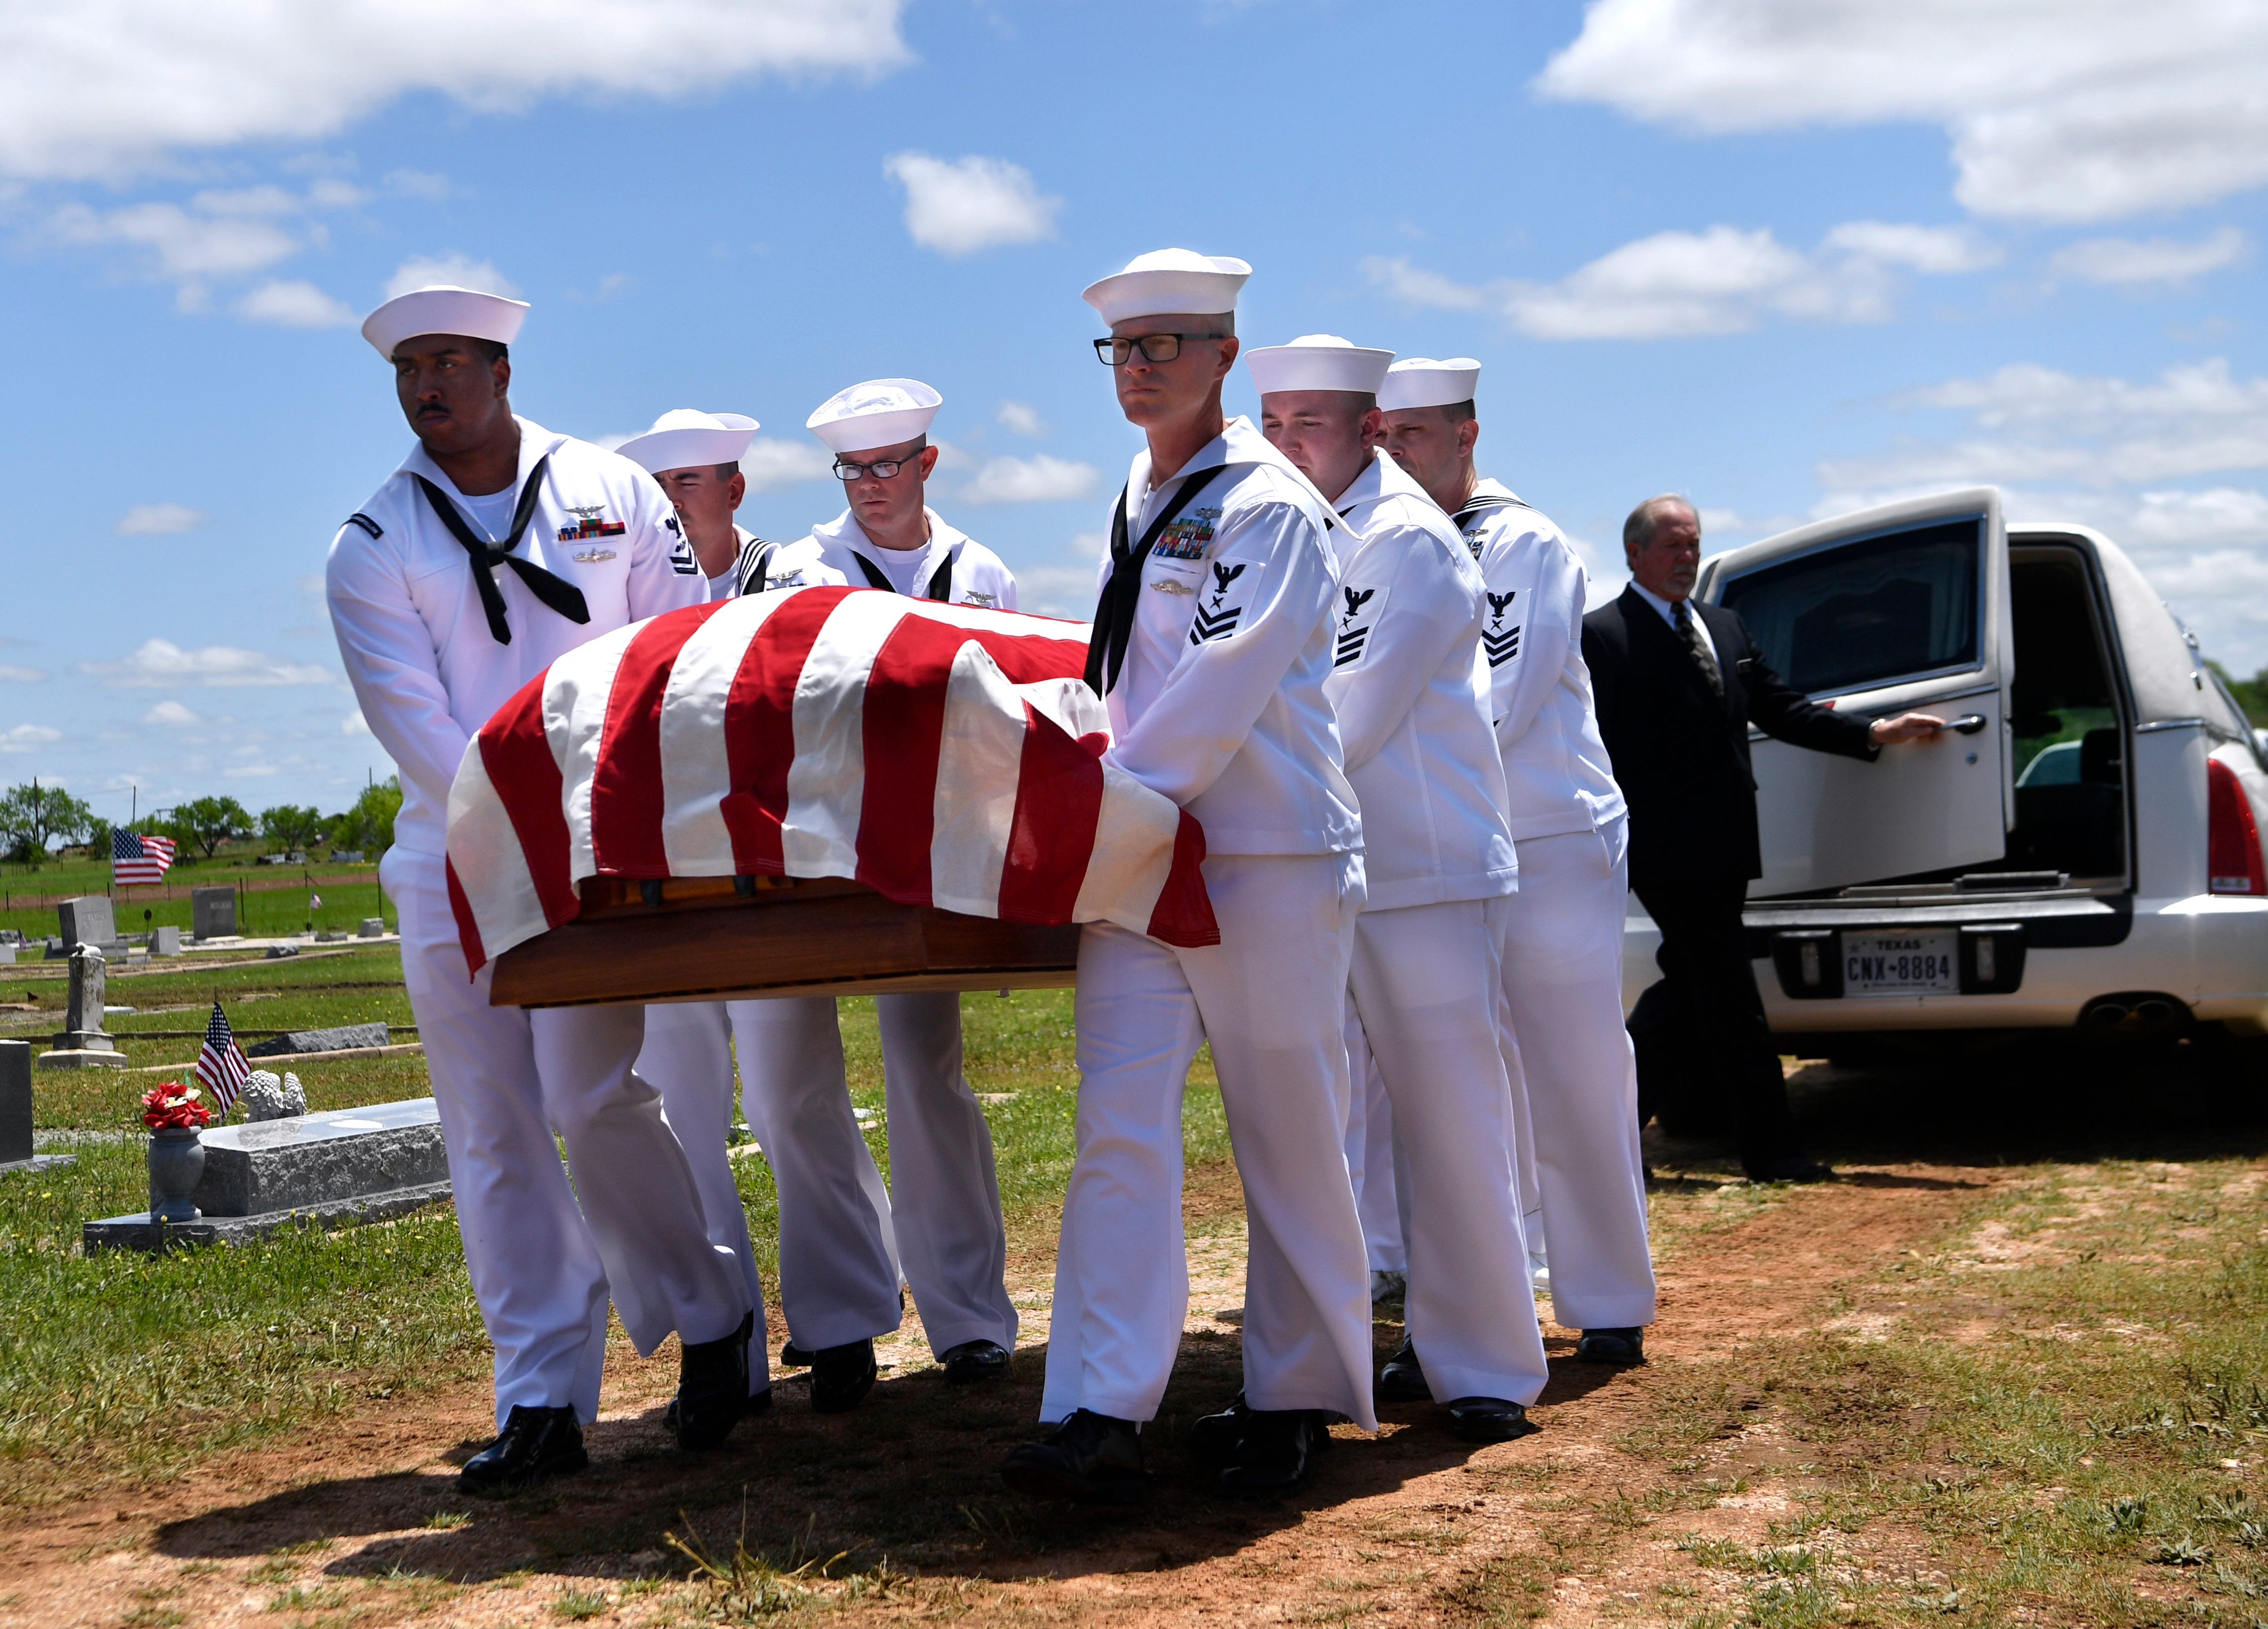 A U.S. Navy honor guard carries the casket of Seaman 1st Class Hale McKissack at Fairview Cemetery in Winters, Texas, on Saturday, May 4, 2019. McKissack was killed during the Japanese attack on Pearl Harbor on Dec. 7, 1941, his remains were only recently identified.